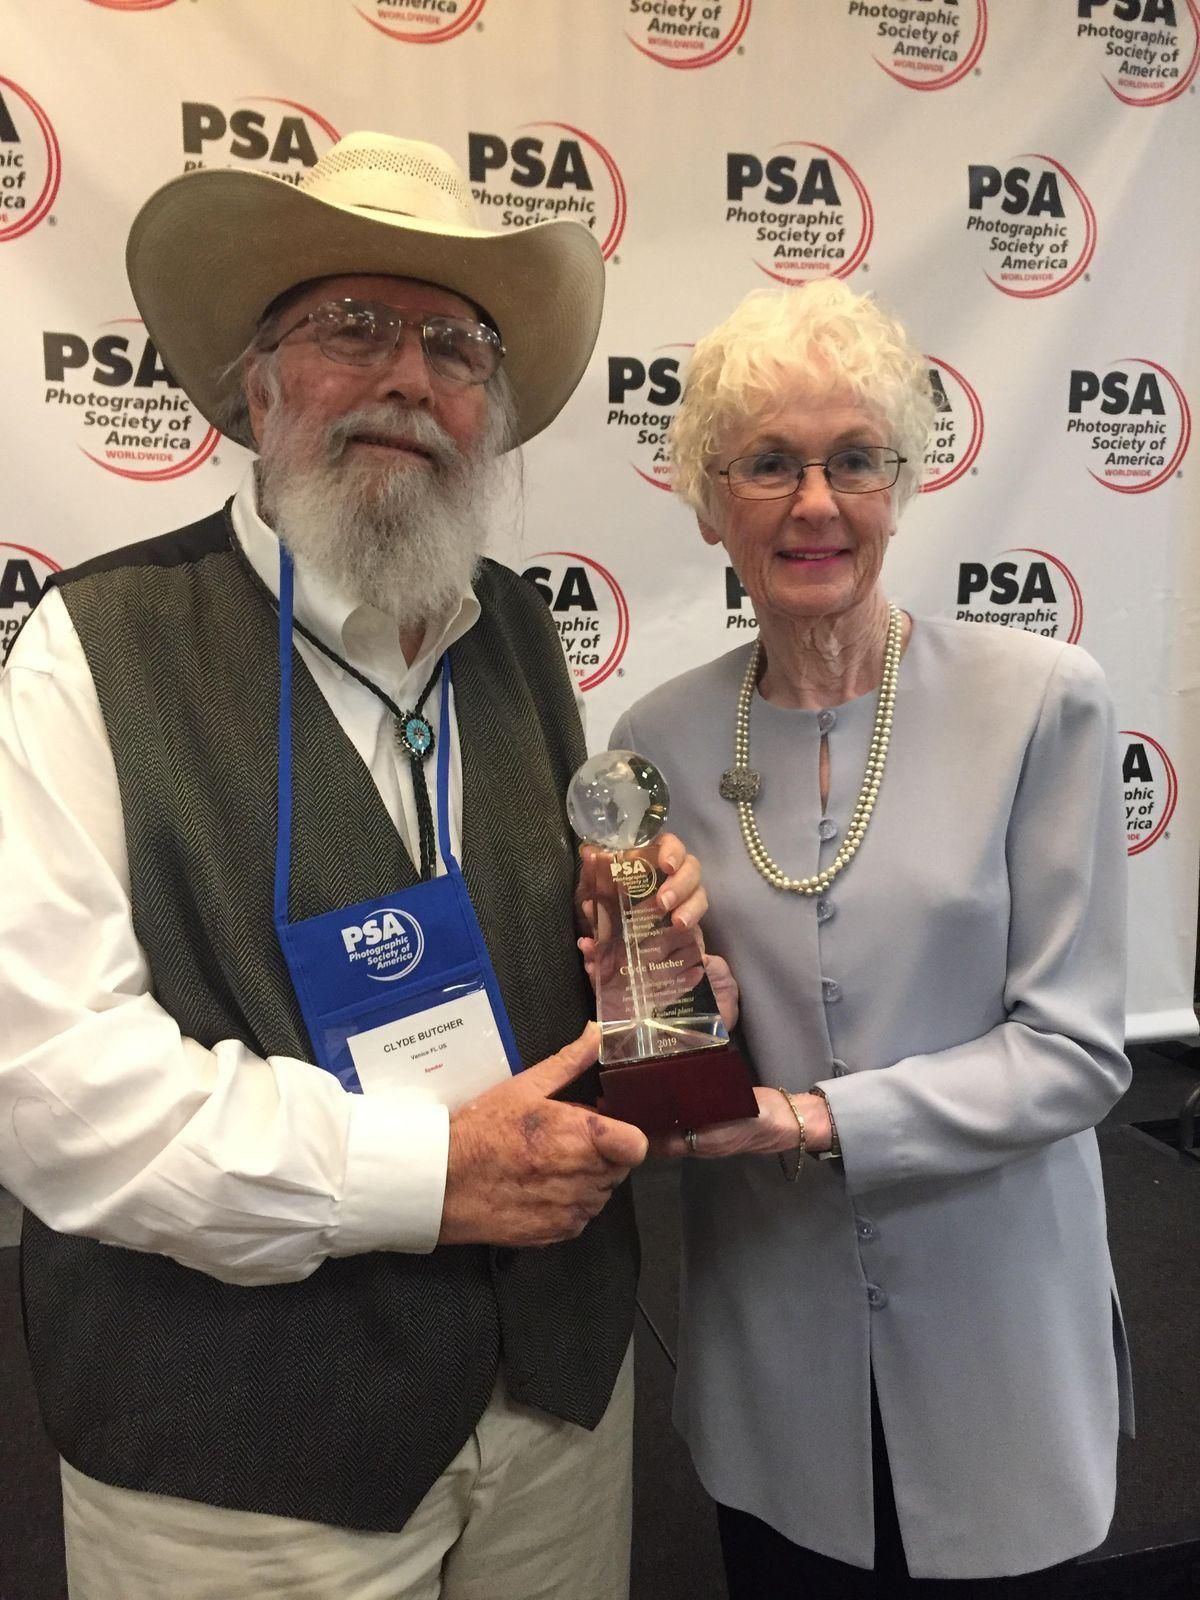 Clyde Butcher honored by Photographic Society of America